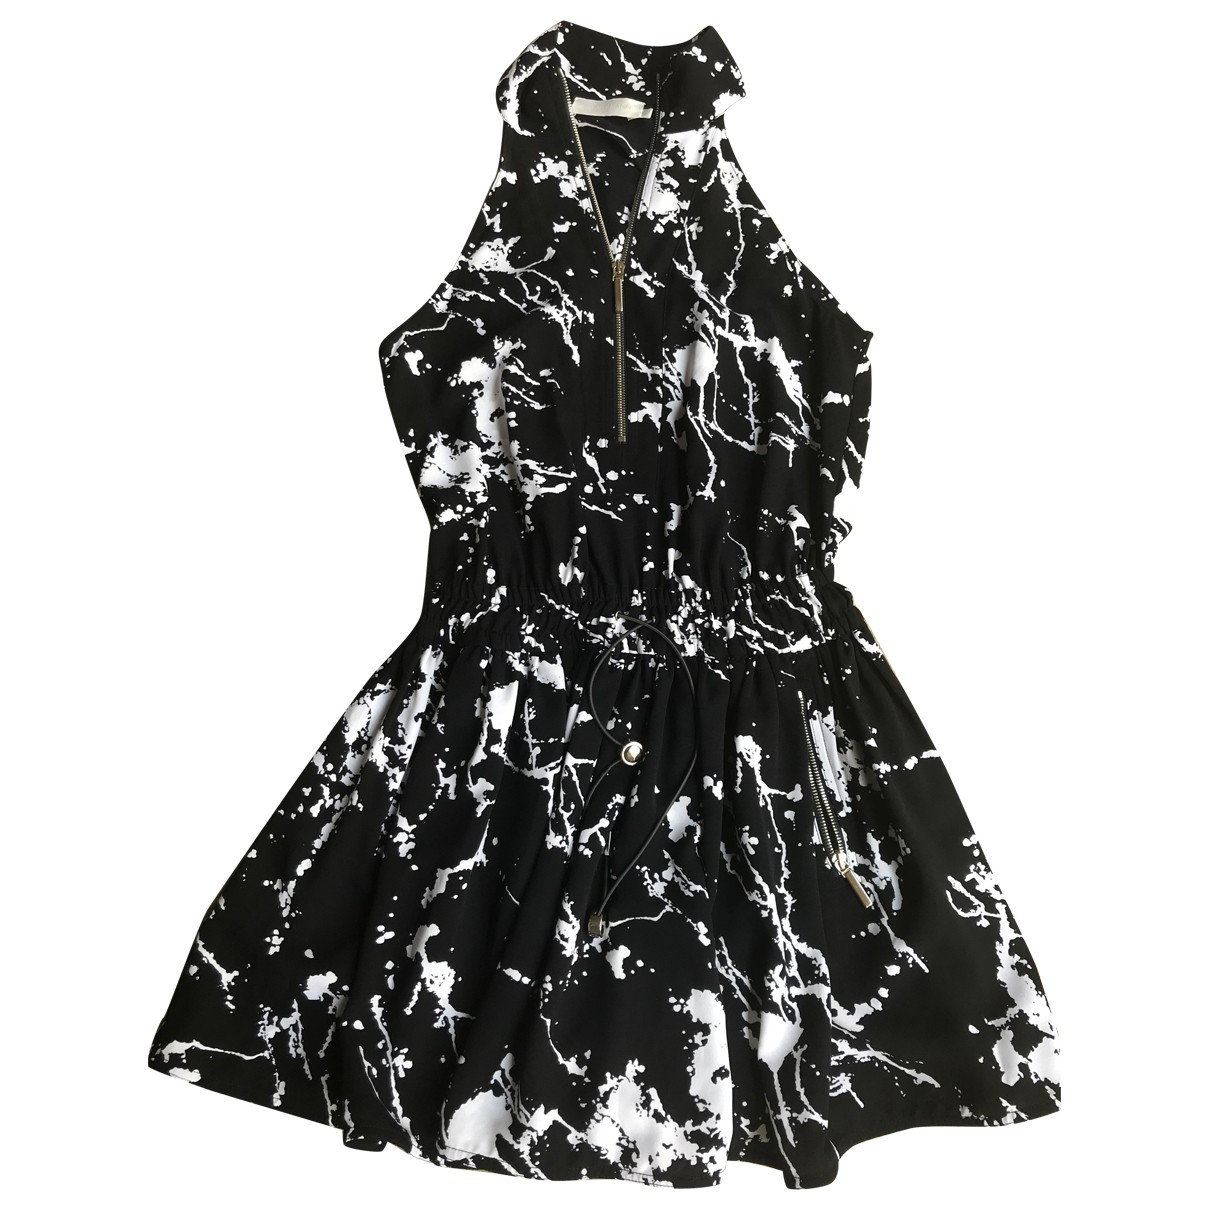 Zimmermann \N Black dress for Women 36 FR